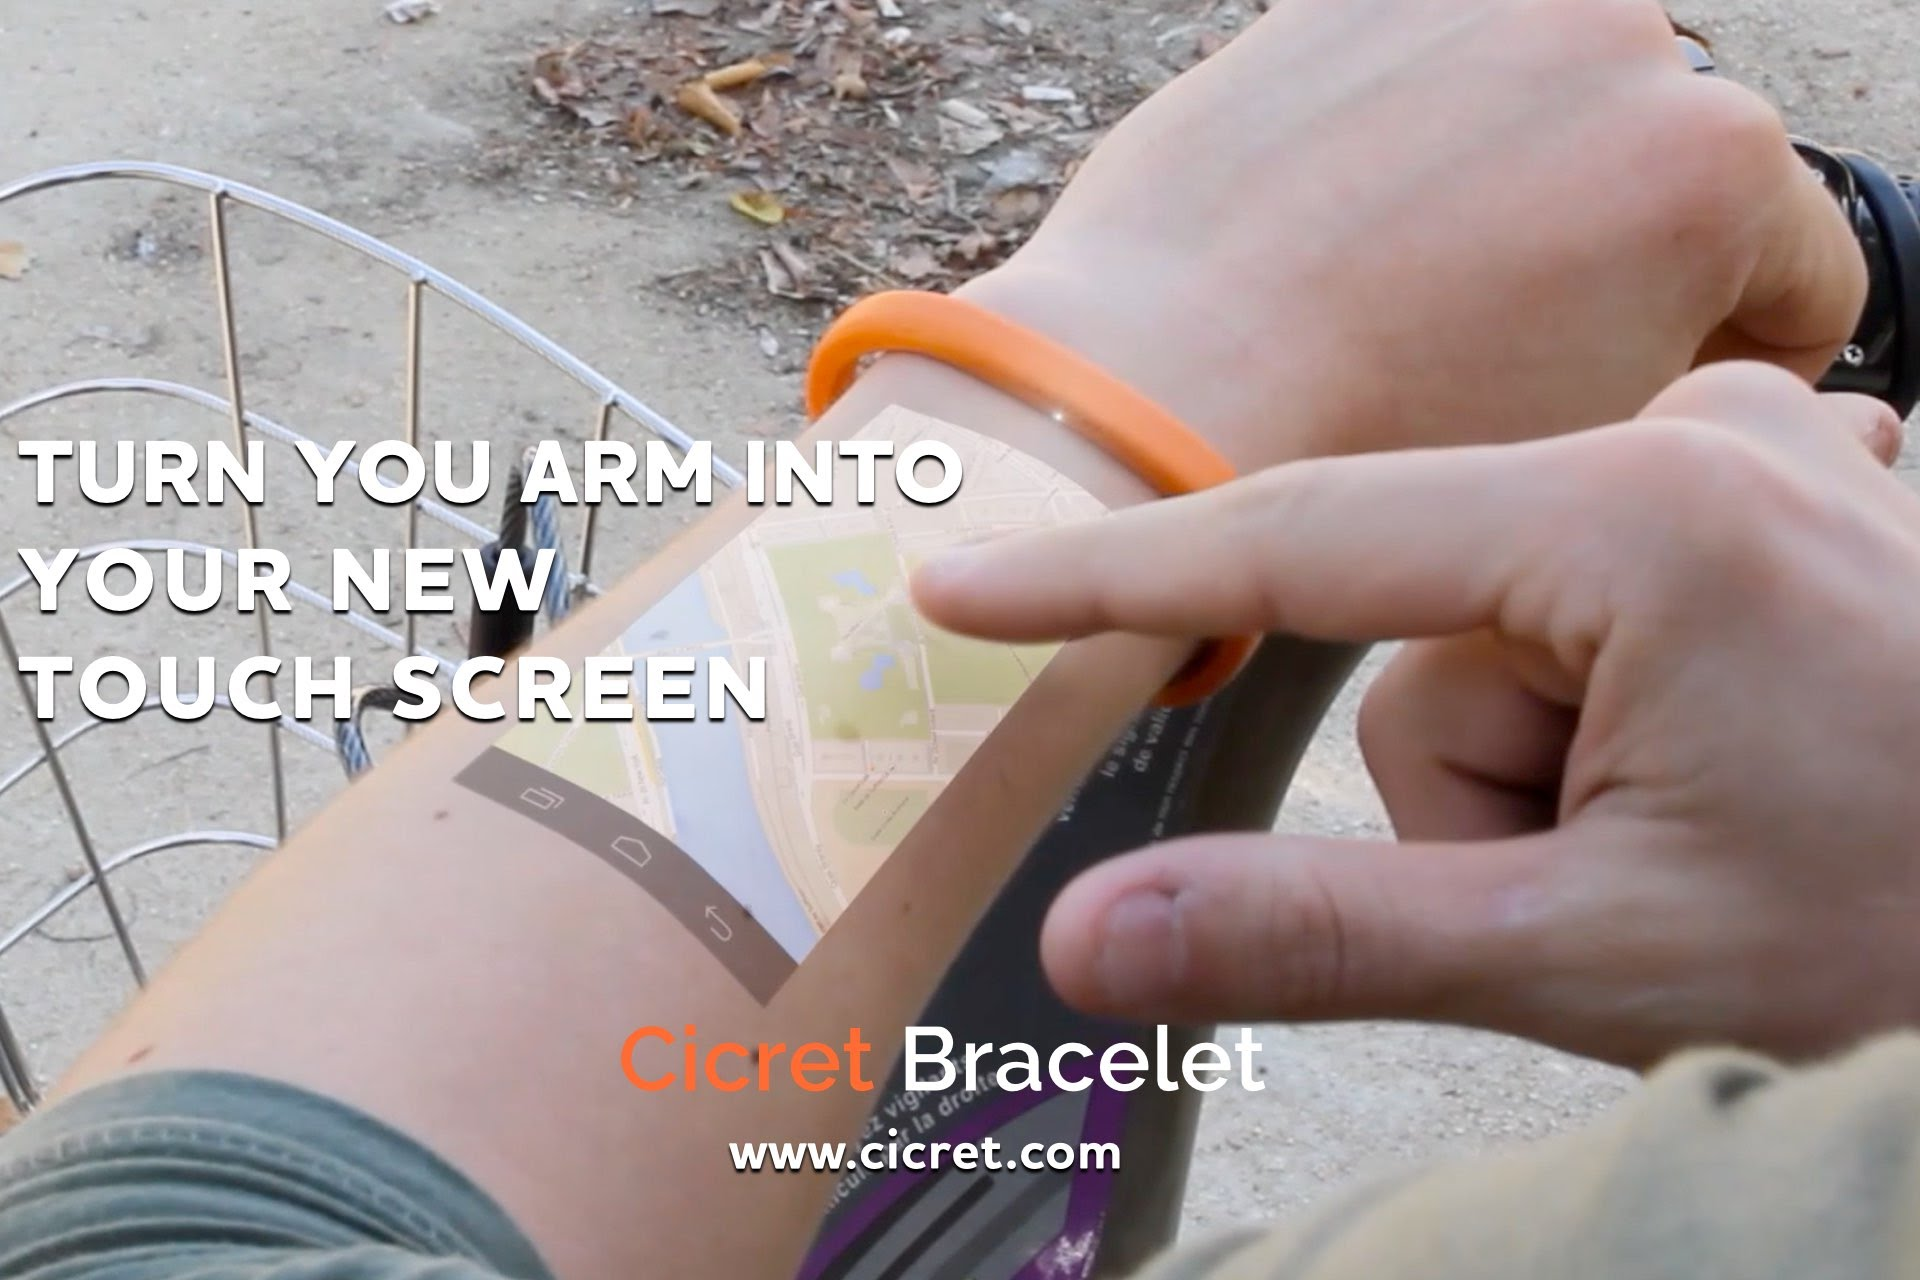 The-Cicret-Bracelet-Like-a-tablet...but-on-your-skin.-www.cicret.com